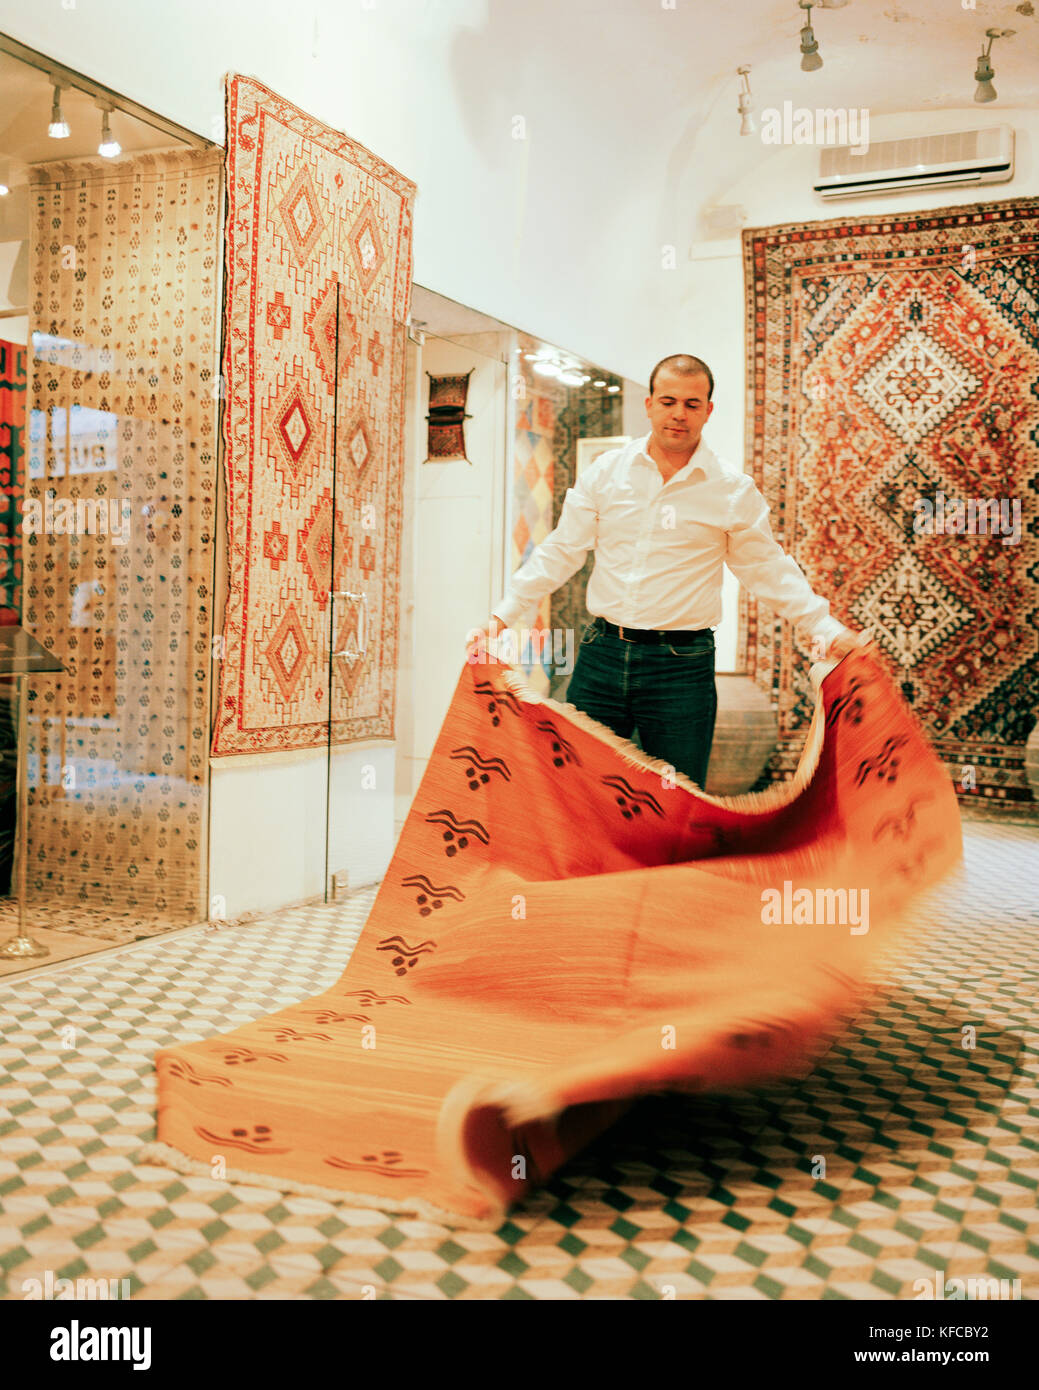 TURKEY, Istanbul, mid adult man holding Turkish carpet in his store in the Grand Bazaar. - Stock Image